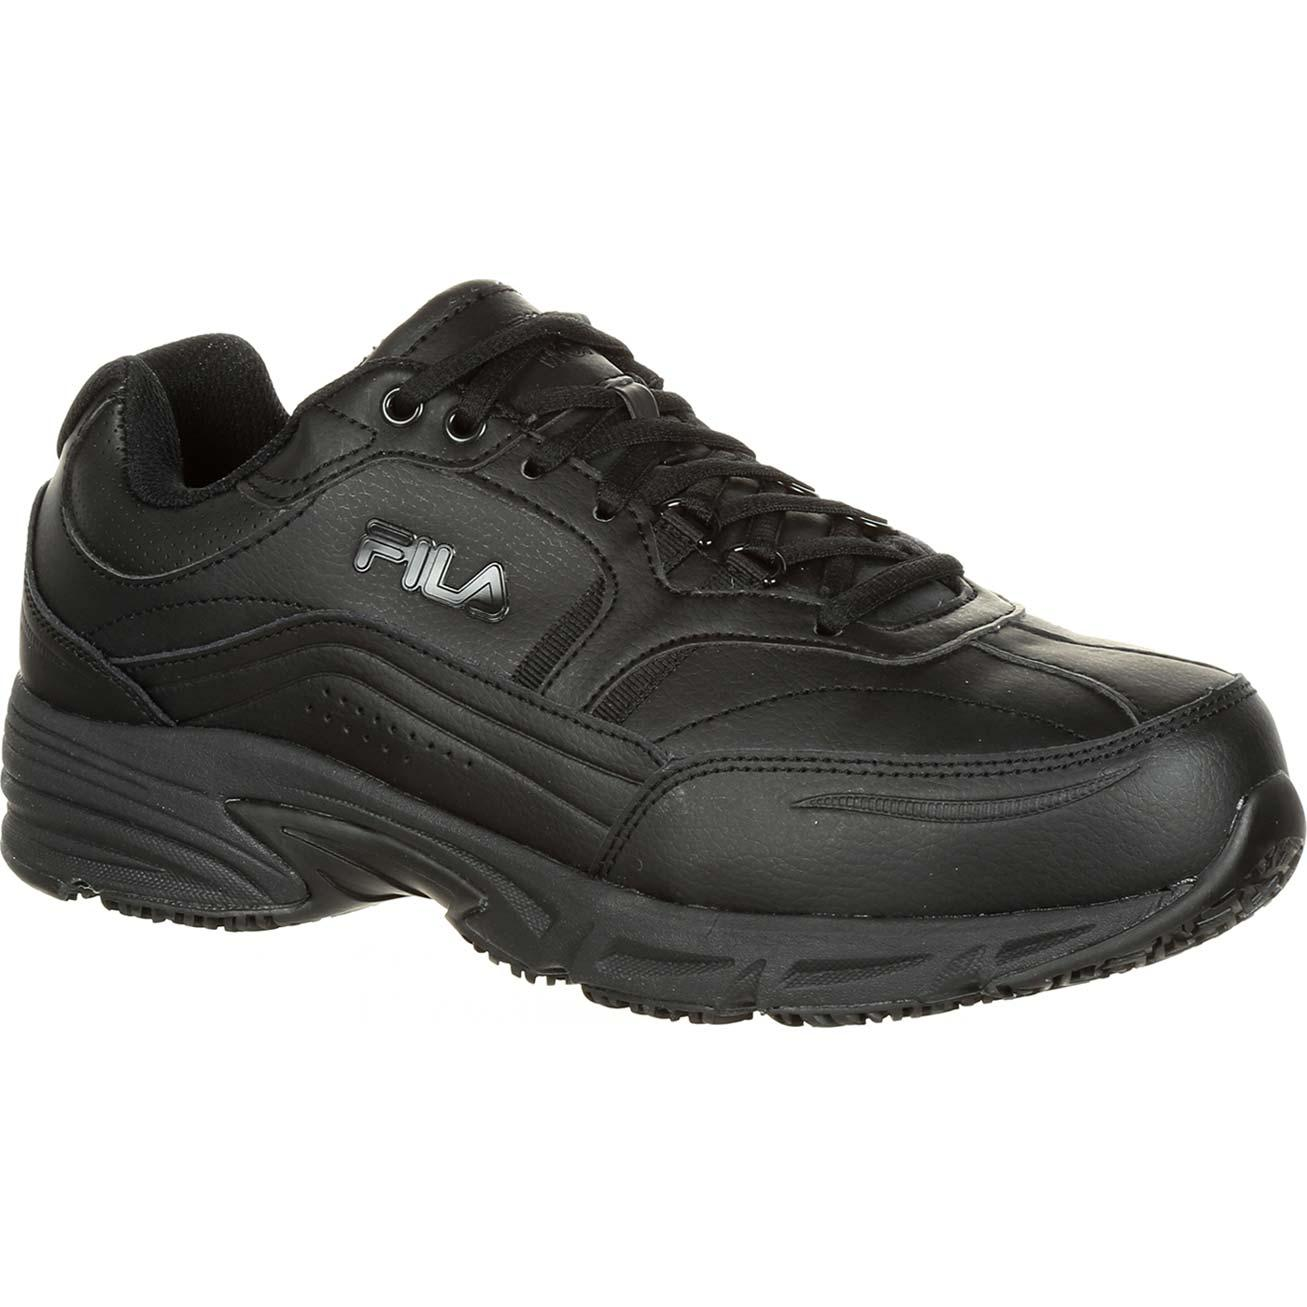 80f7cd107e Fila Safety Shoes - Lehigh Safety Shoes